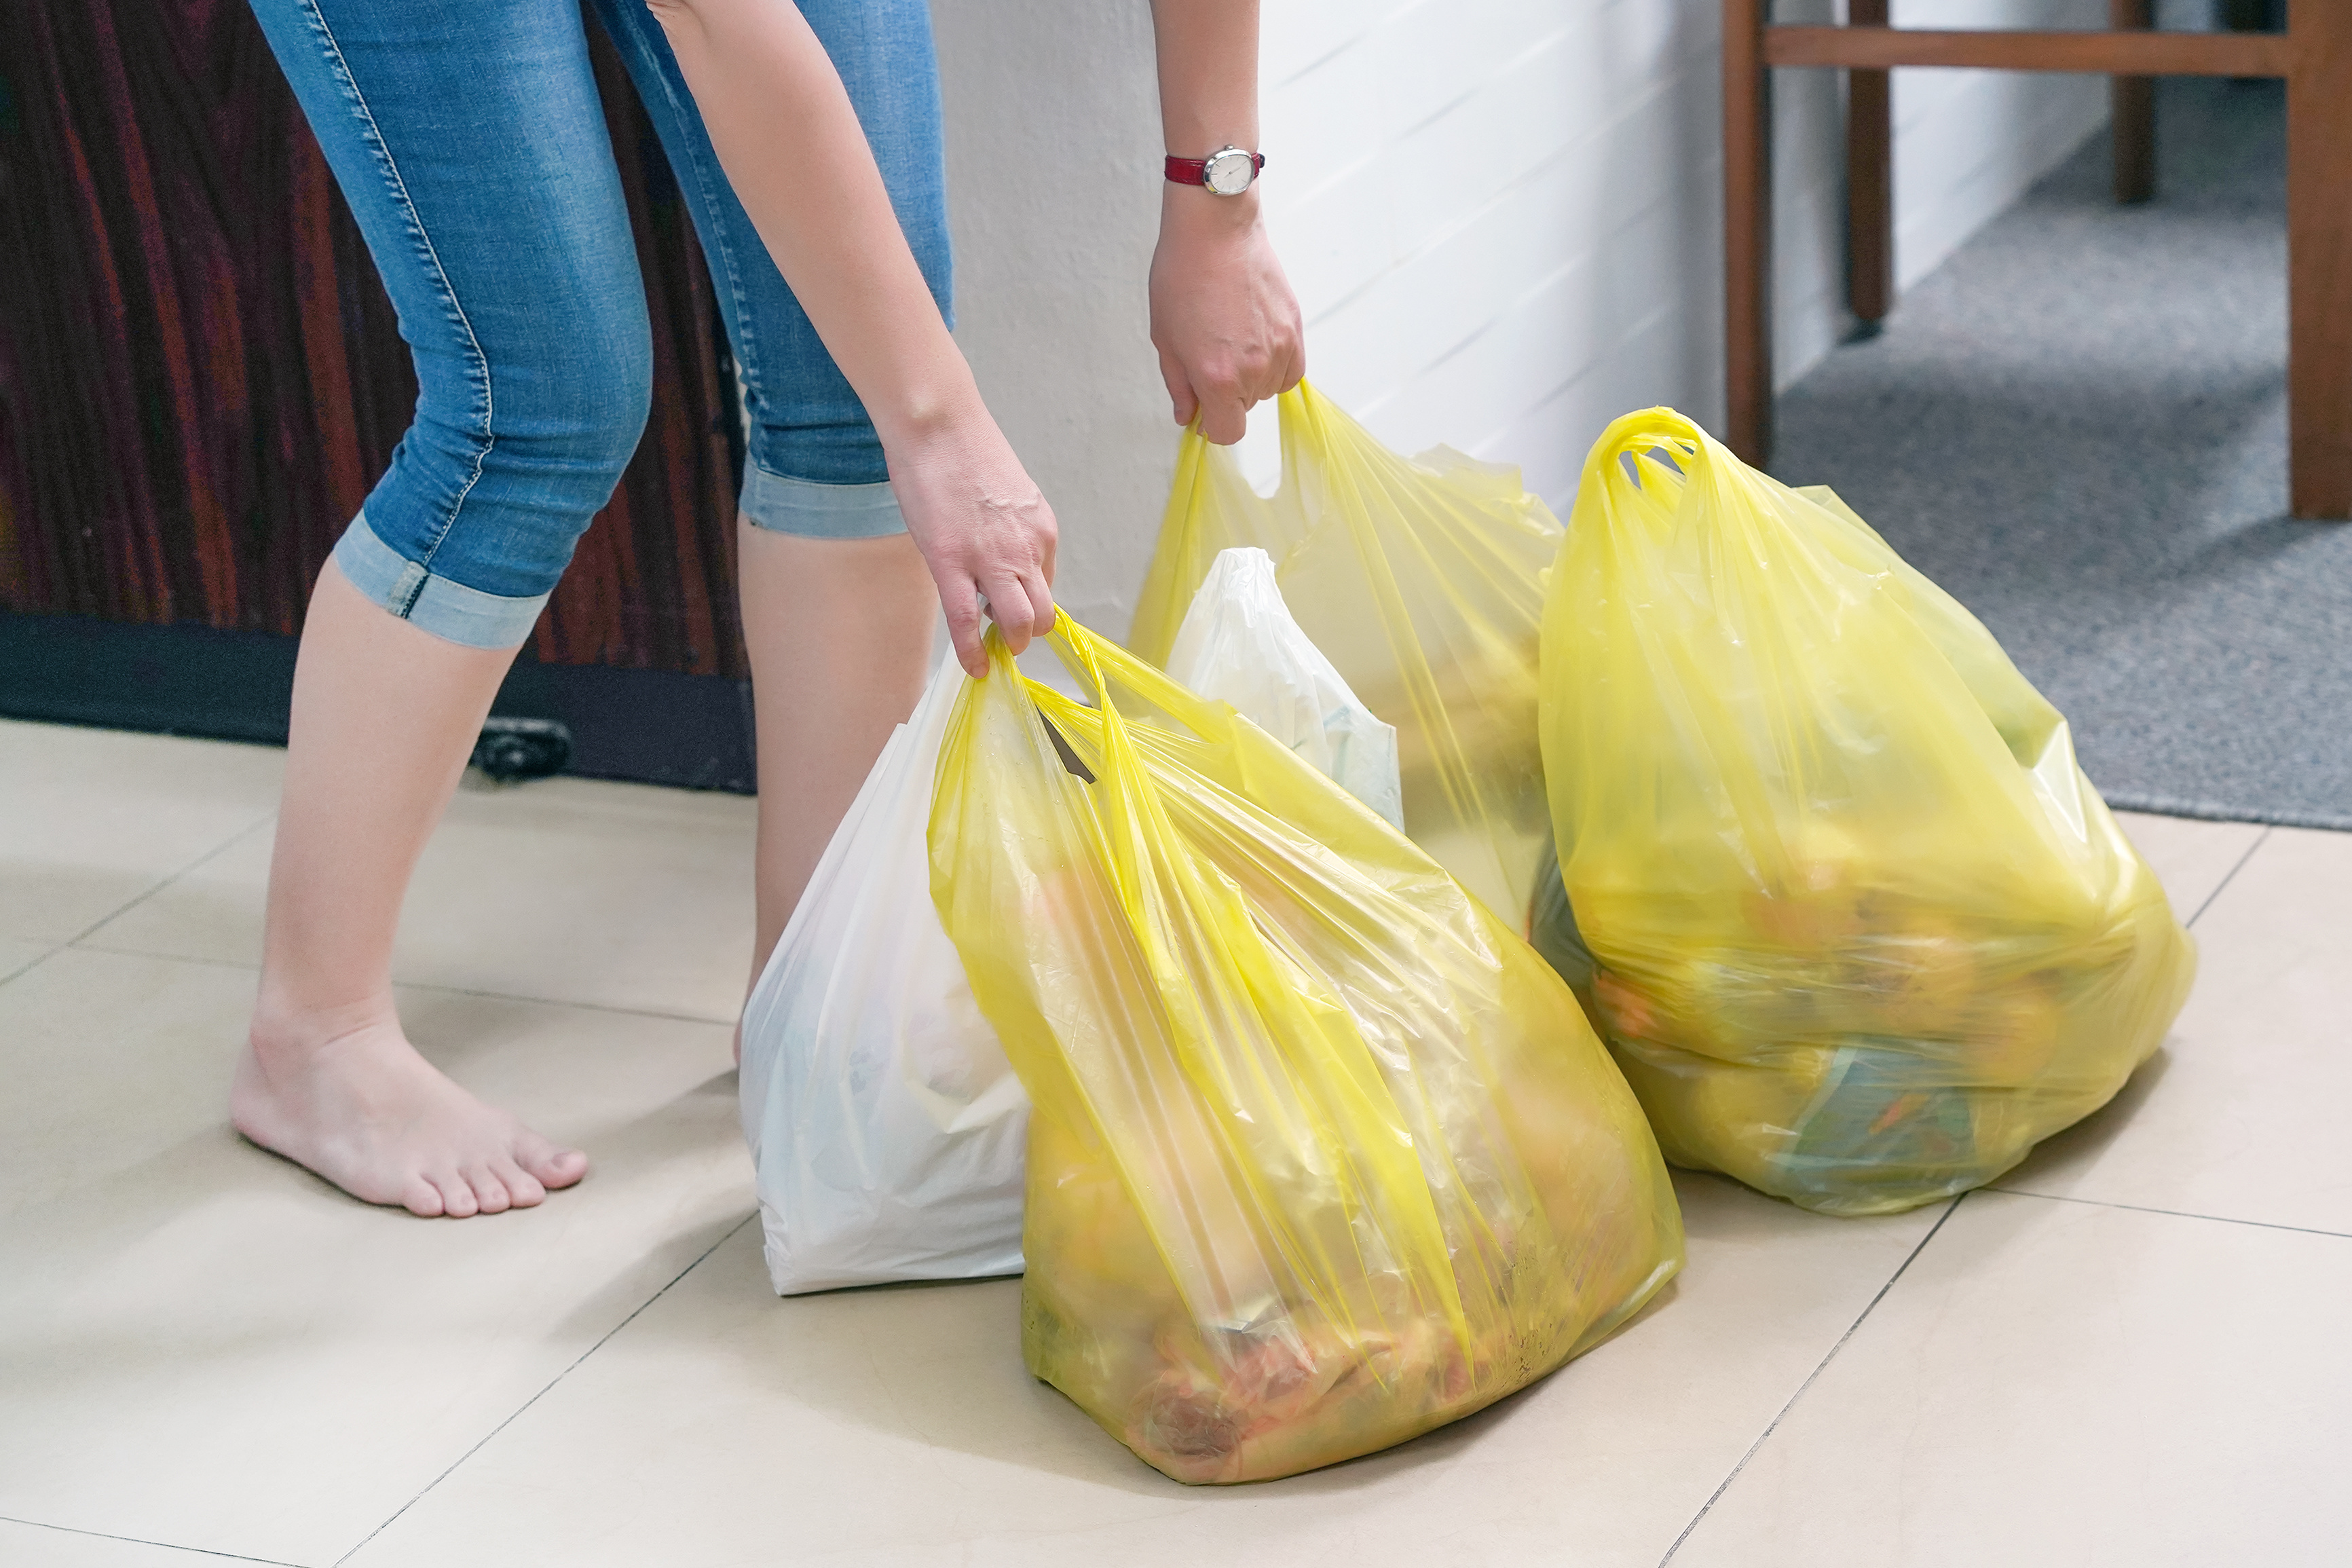 Millions of single-use plastic bags will continue to be handed out after Victorian ban